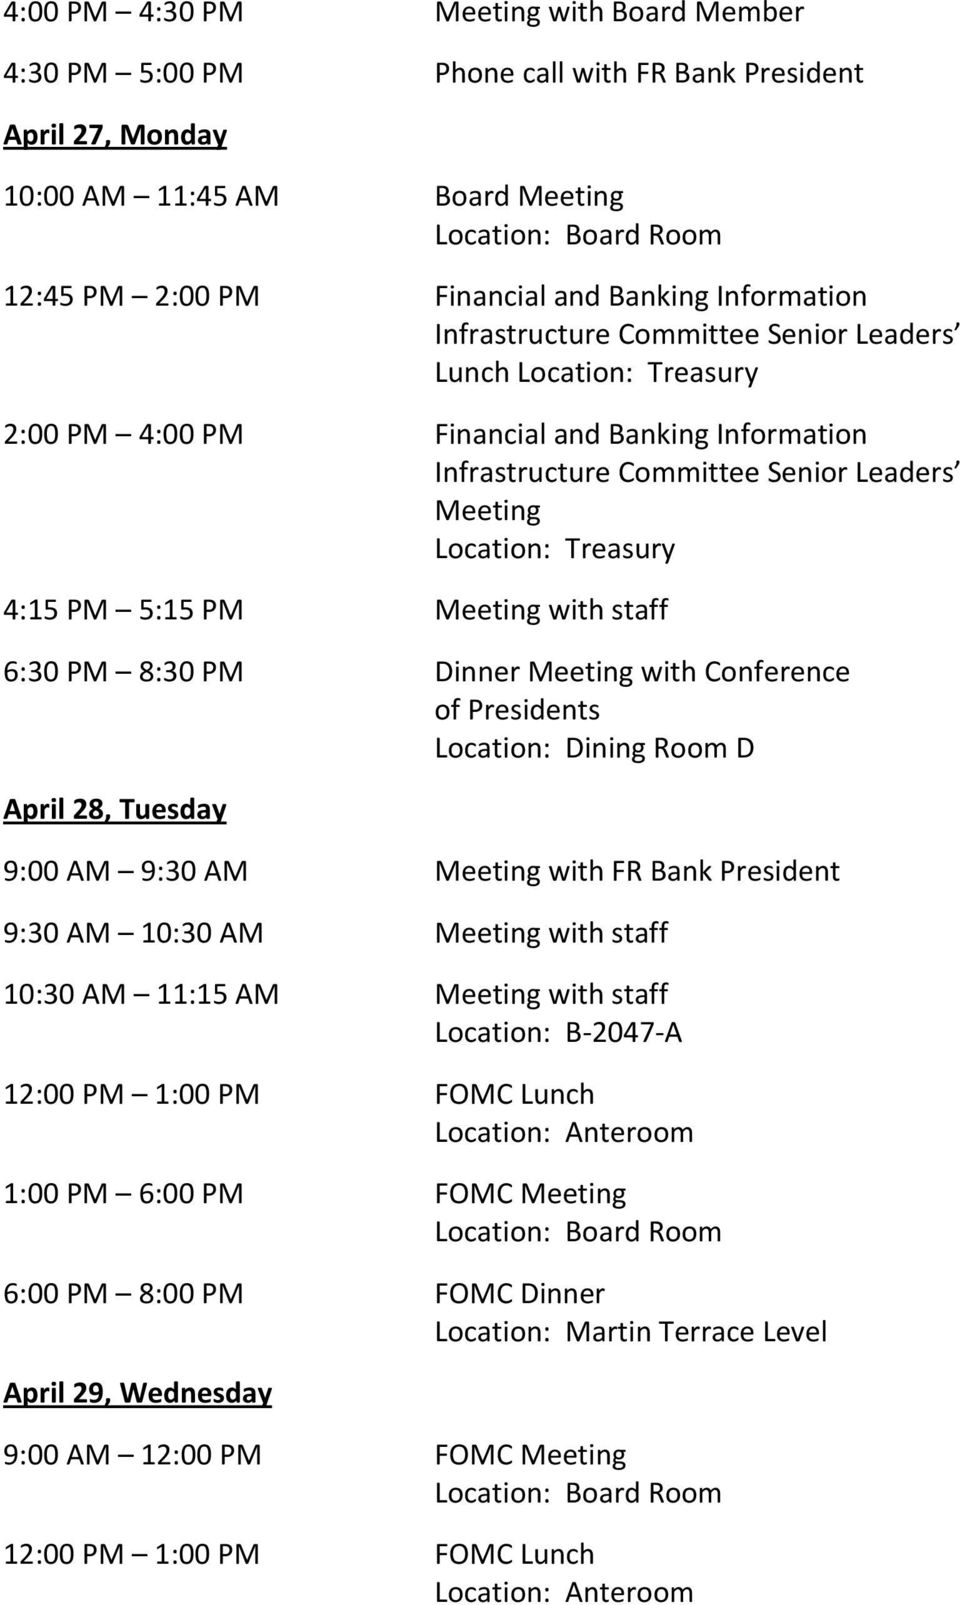 Meeting with staff 6:30 PM 8:30 PM Dinner Meeting with Conference of Presidents Location: Dining Room D April 28, Tuesday 9:00 AM 9:30 AM Meeting with FR Bank President 9:30 AM 10:30 AM Meeting with